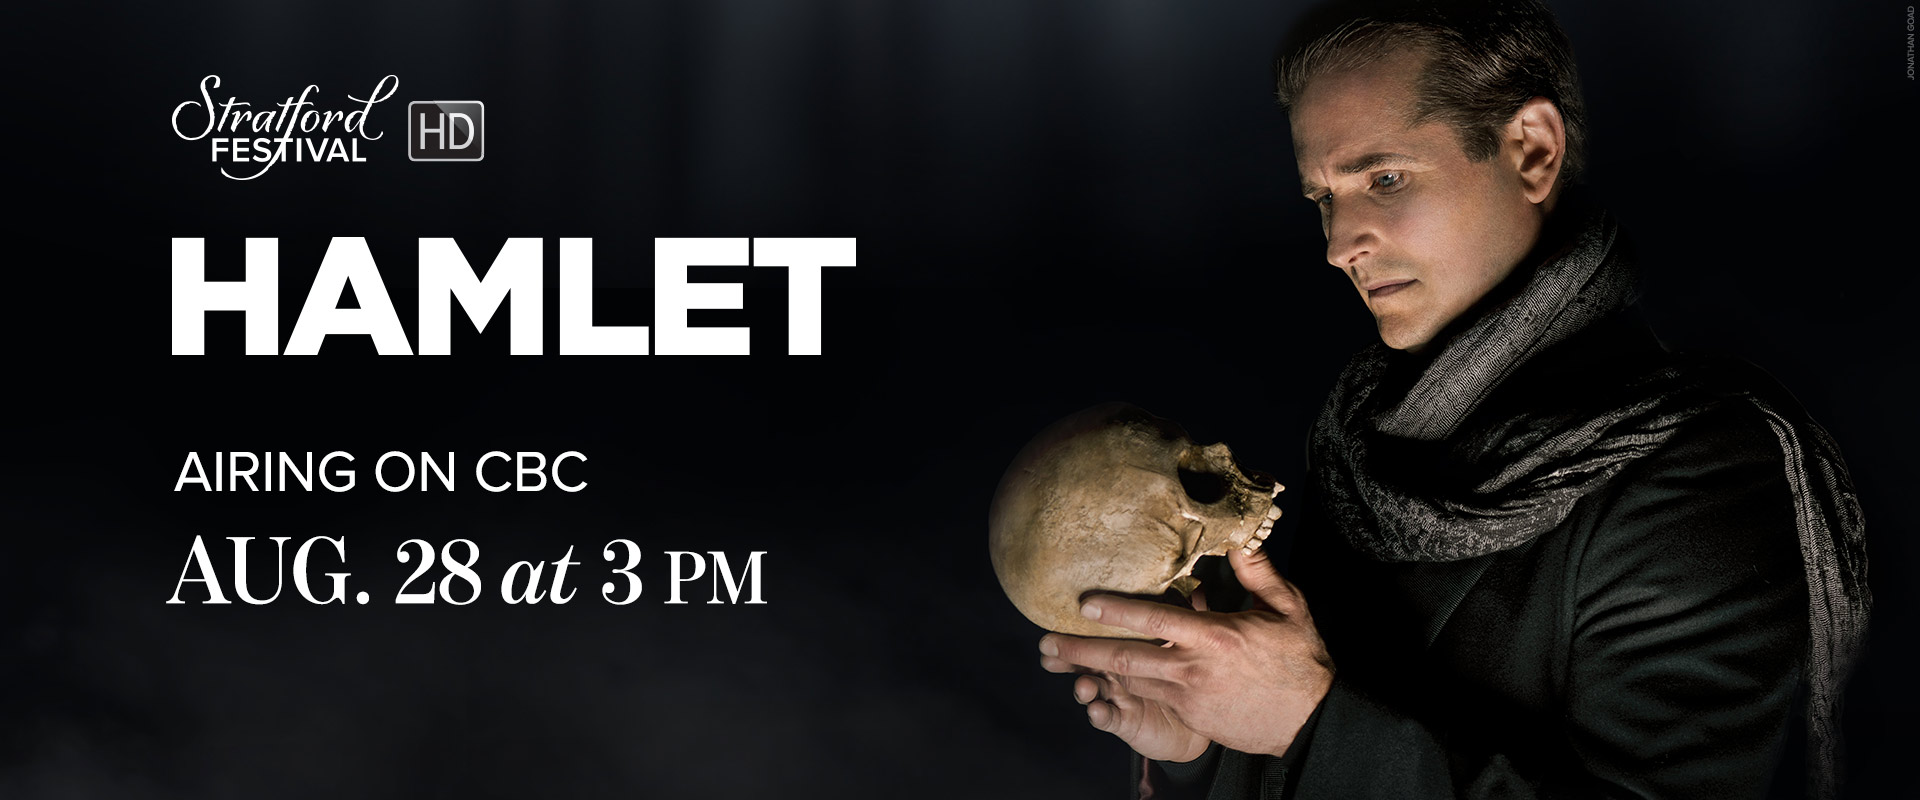 Publicity image from Hamlet